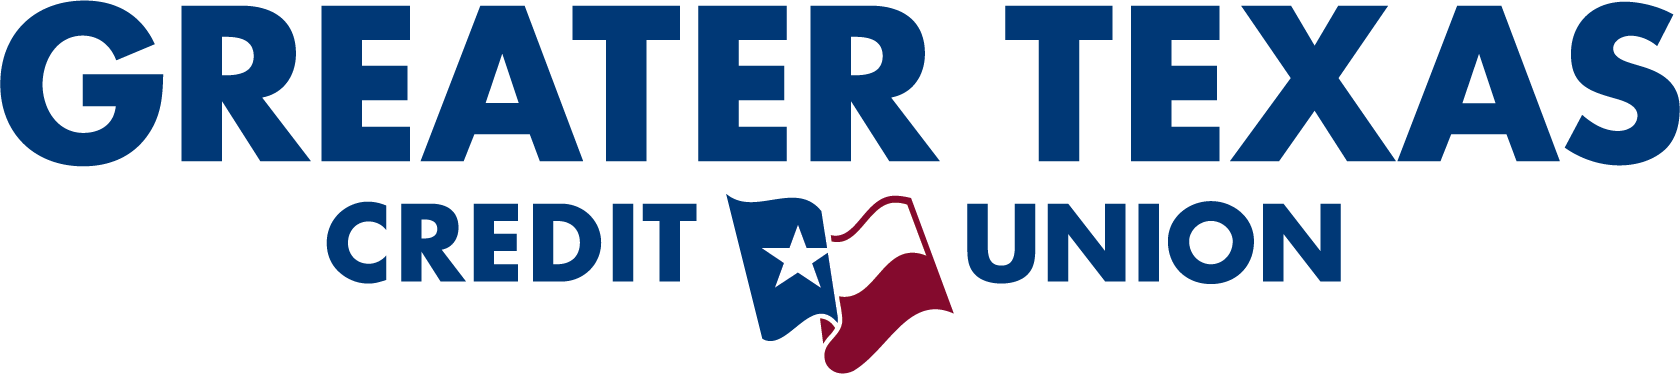 Greater Texas Credit Untion Event Sponsor.png